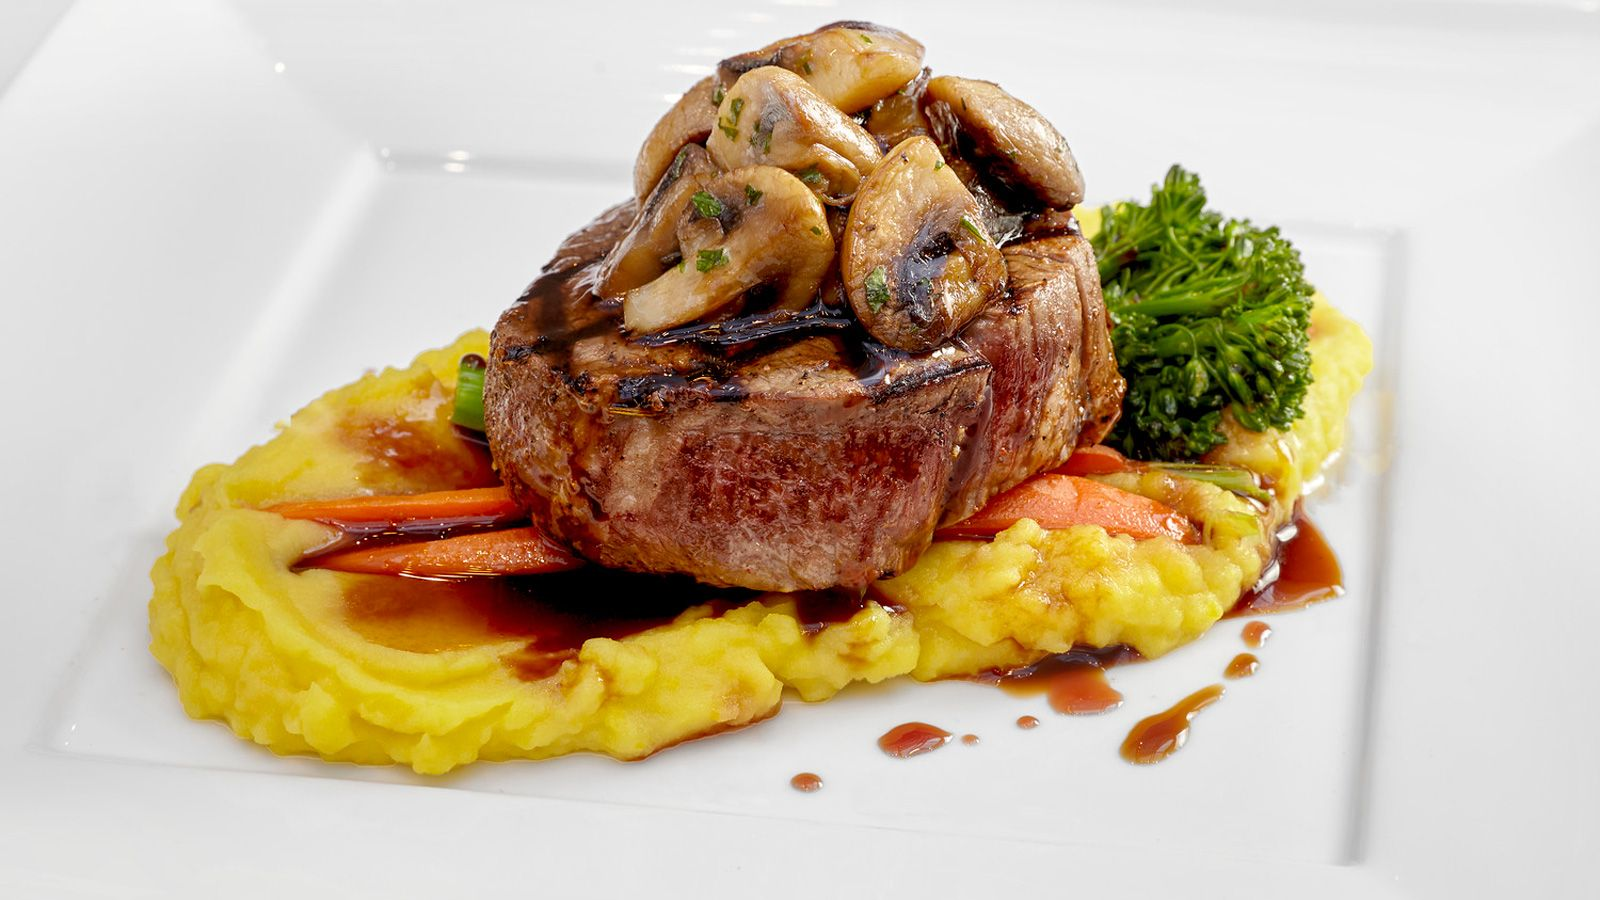 Expertly cooked Tenderloin - an example of the high quality fare offered at our Surrey, BC event venue.